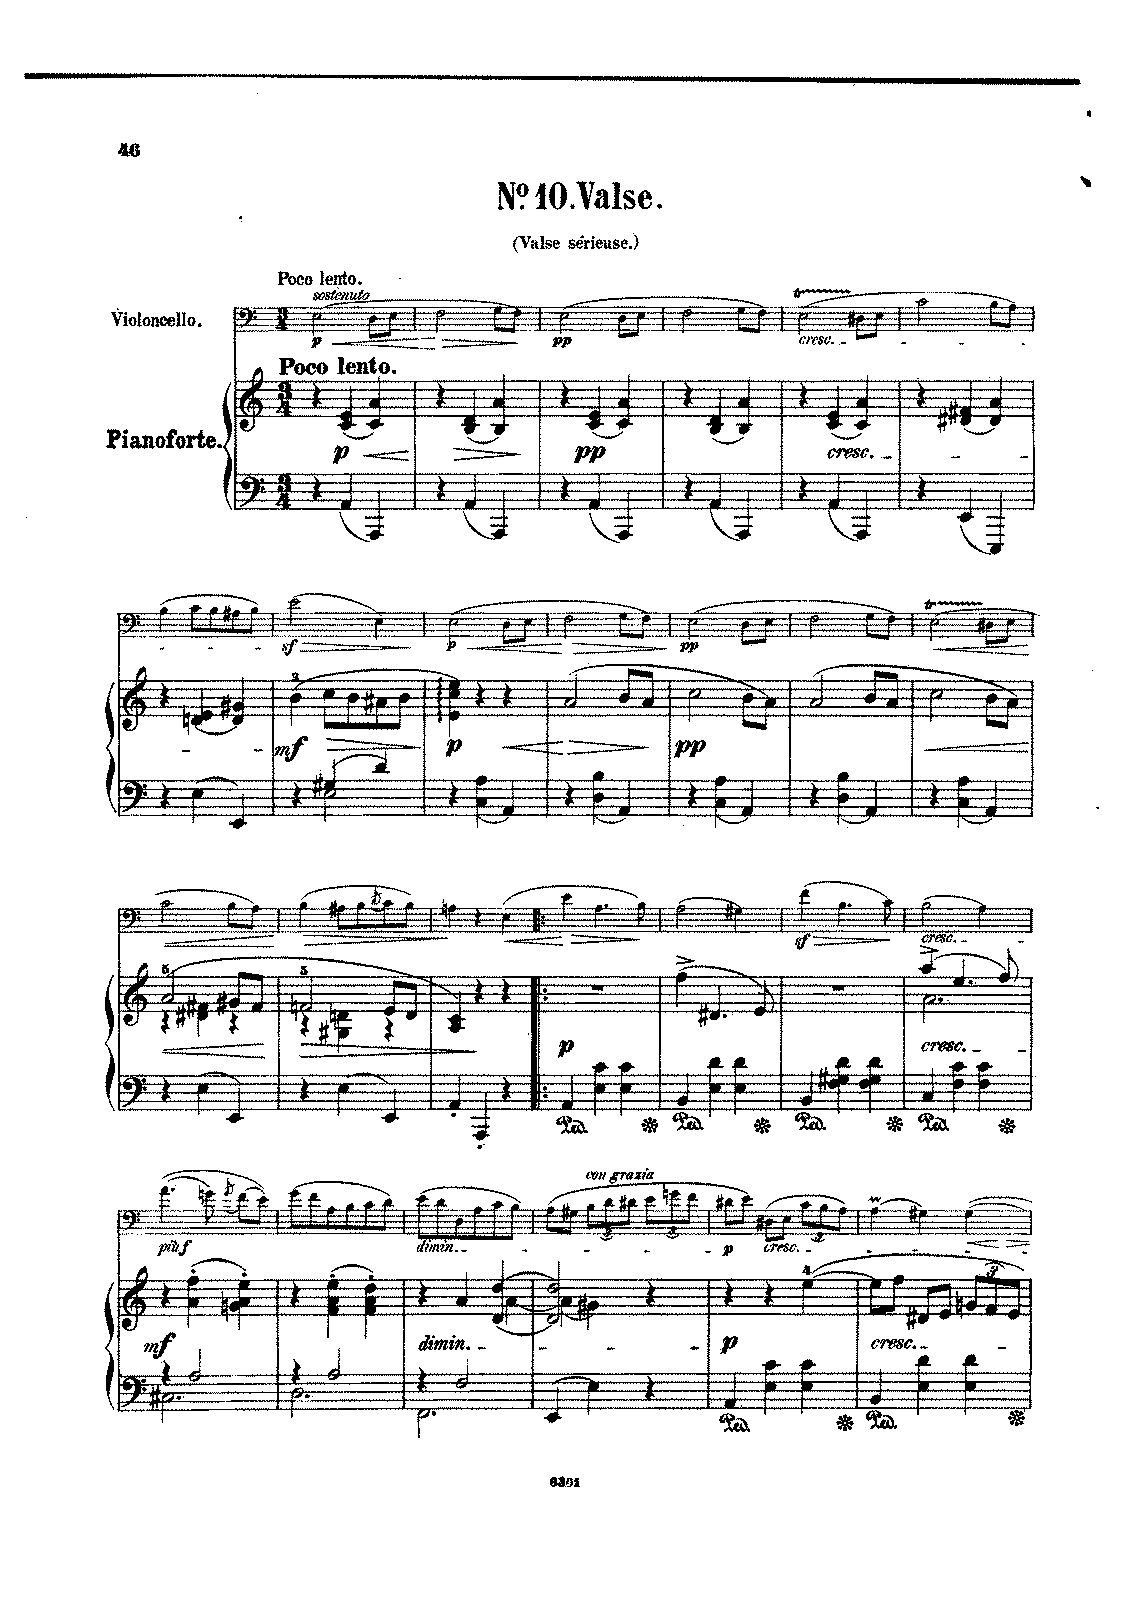 PMLP02370-Chopin - 10a Valse Serieuse Op34 No2 for Cello and Piano (Grutzmacher) score.pdf